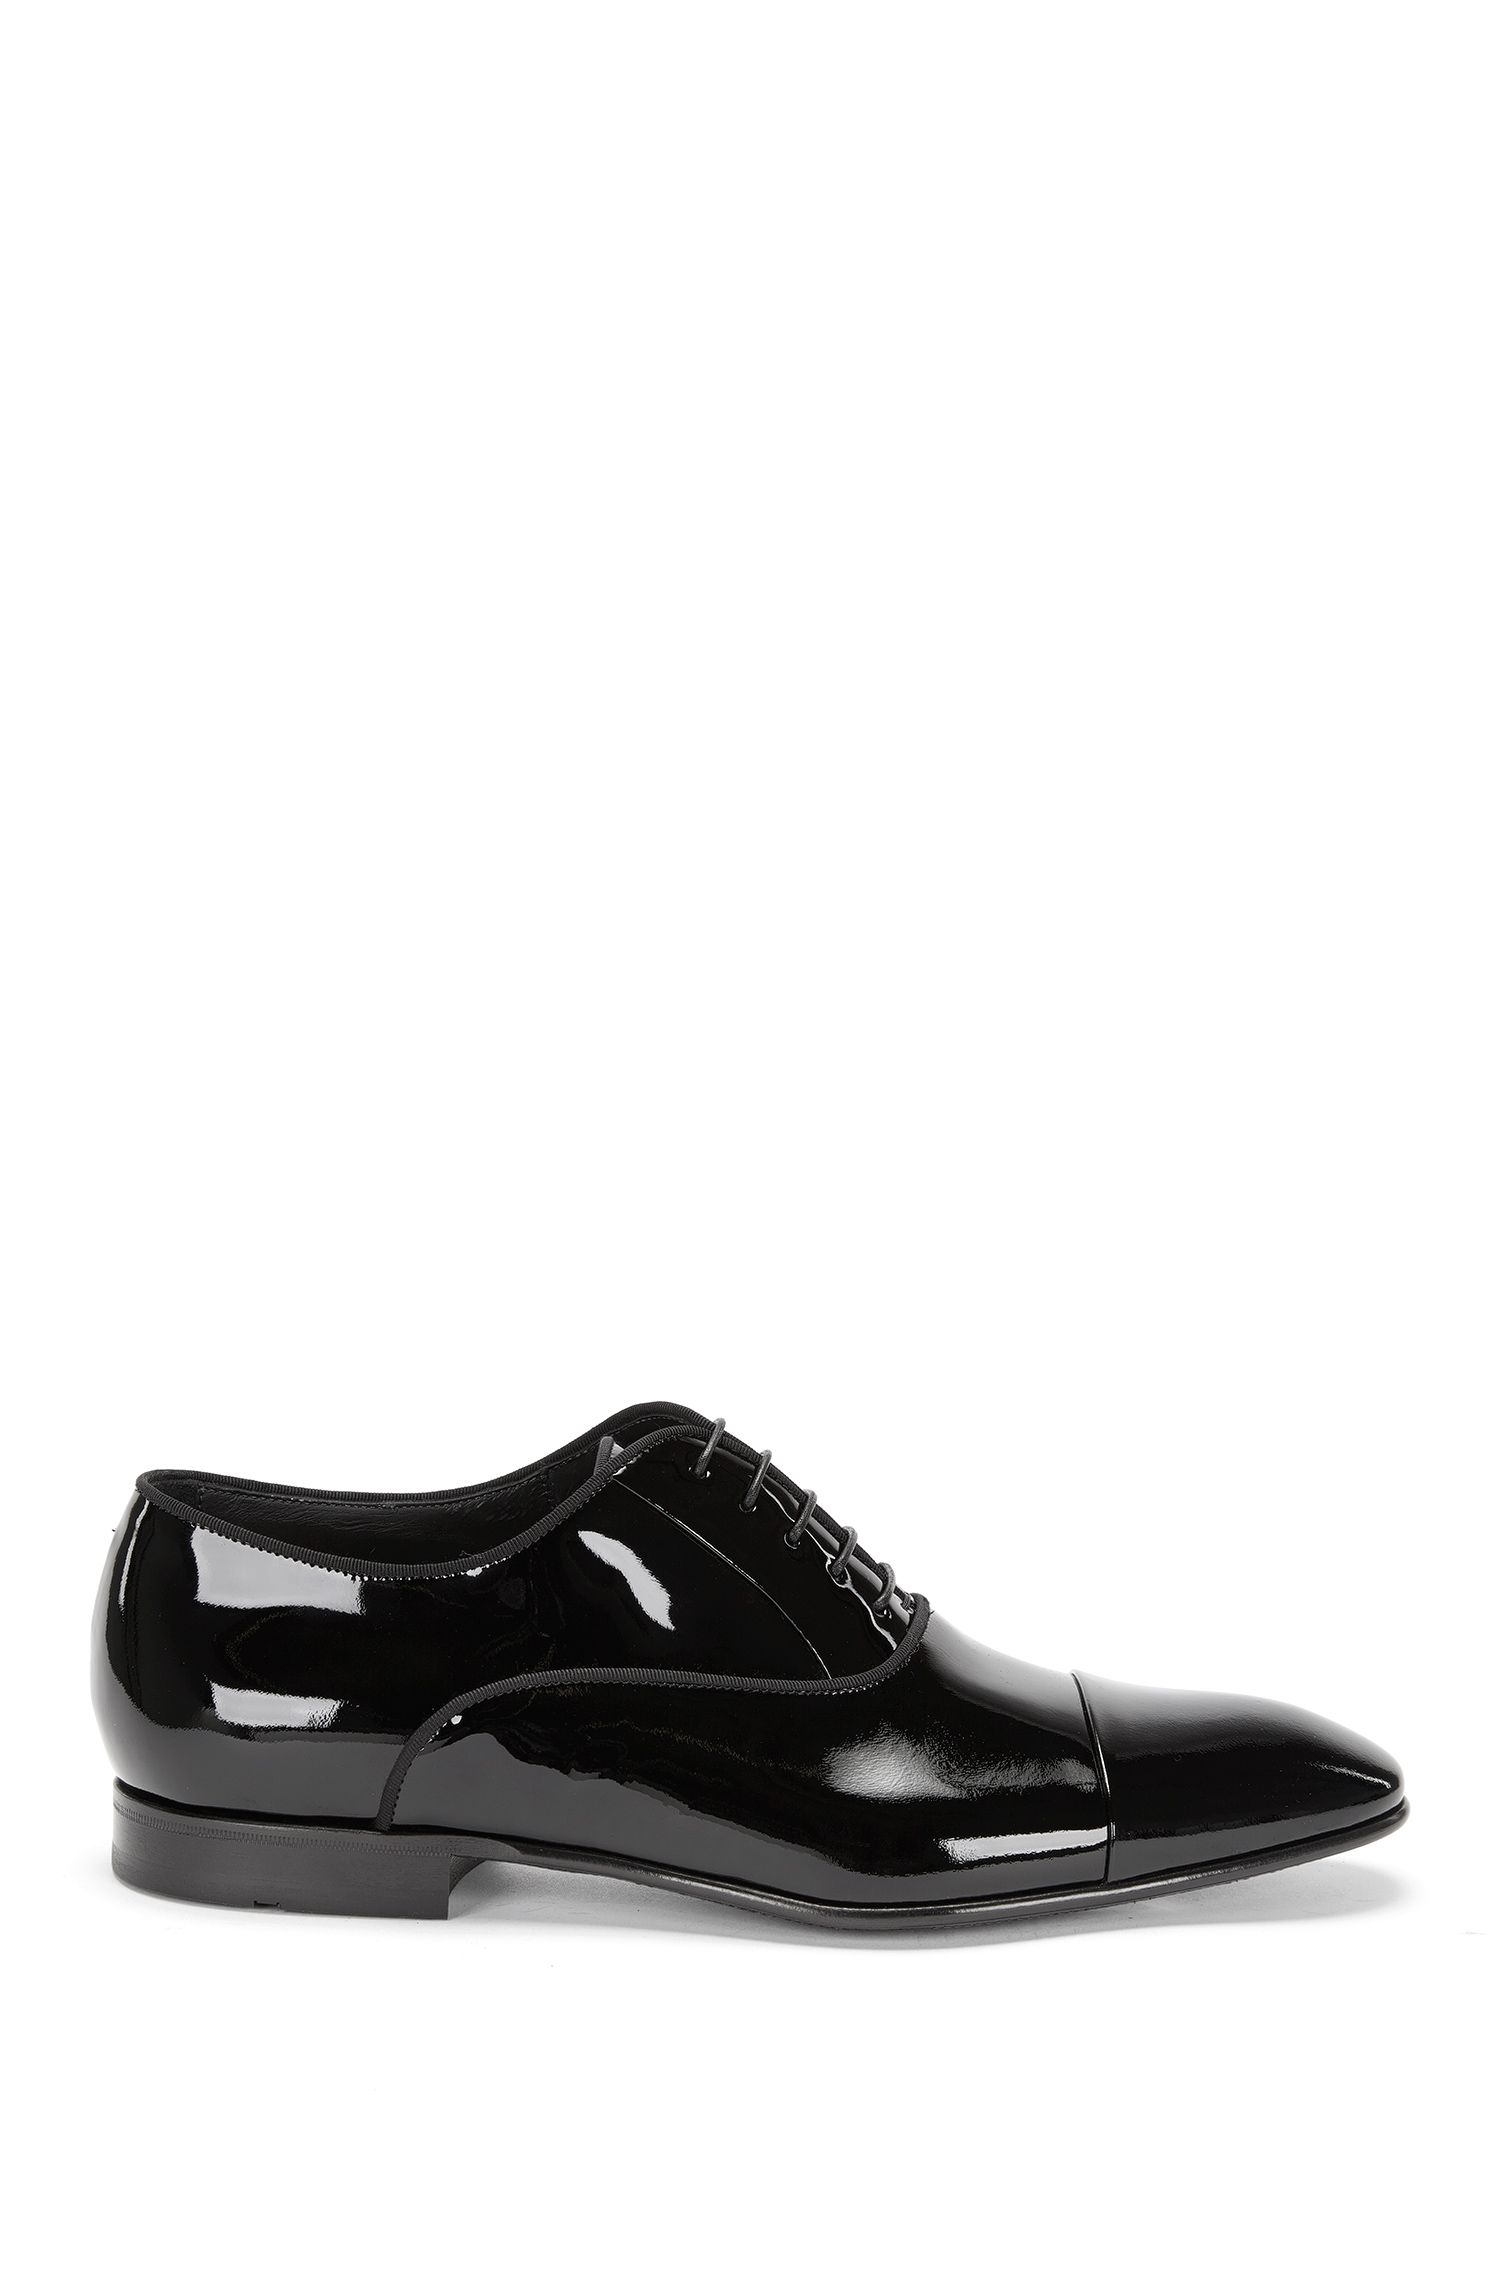 Patent leather lace-up shoes in Oxford style: 'Evening_Oxfr_pact'